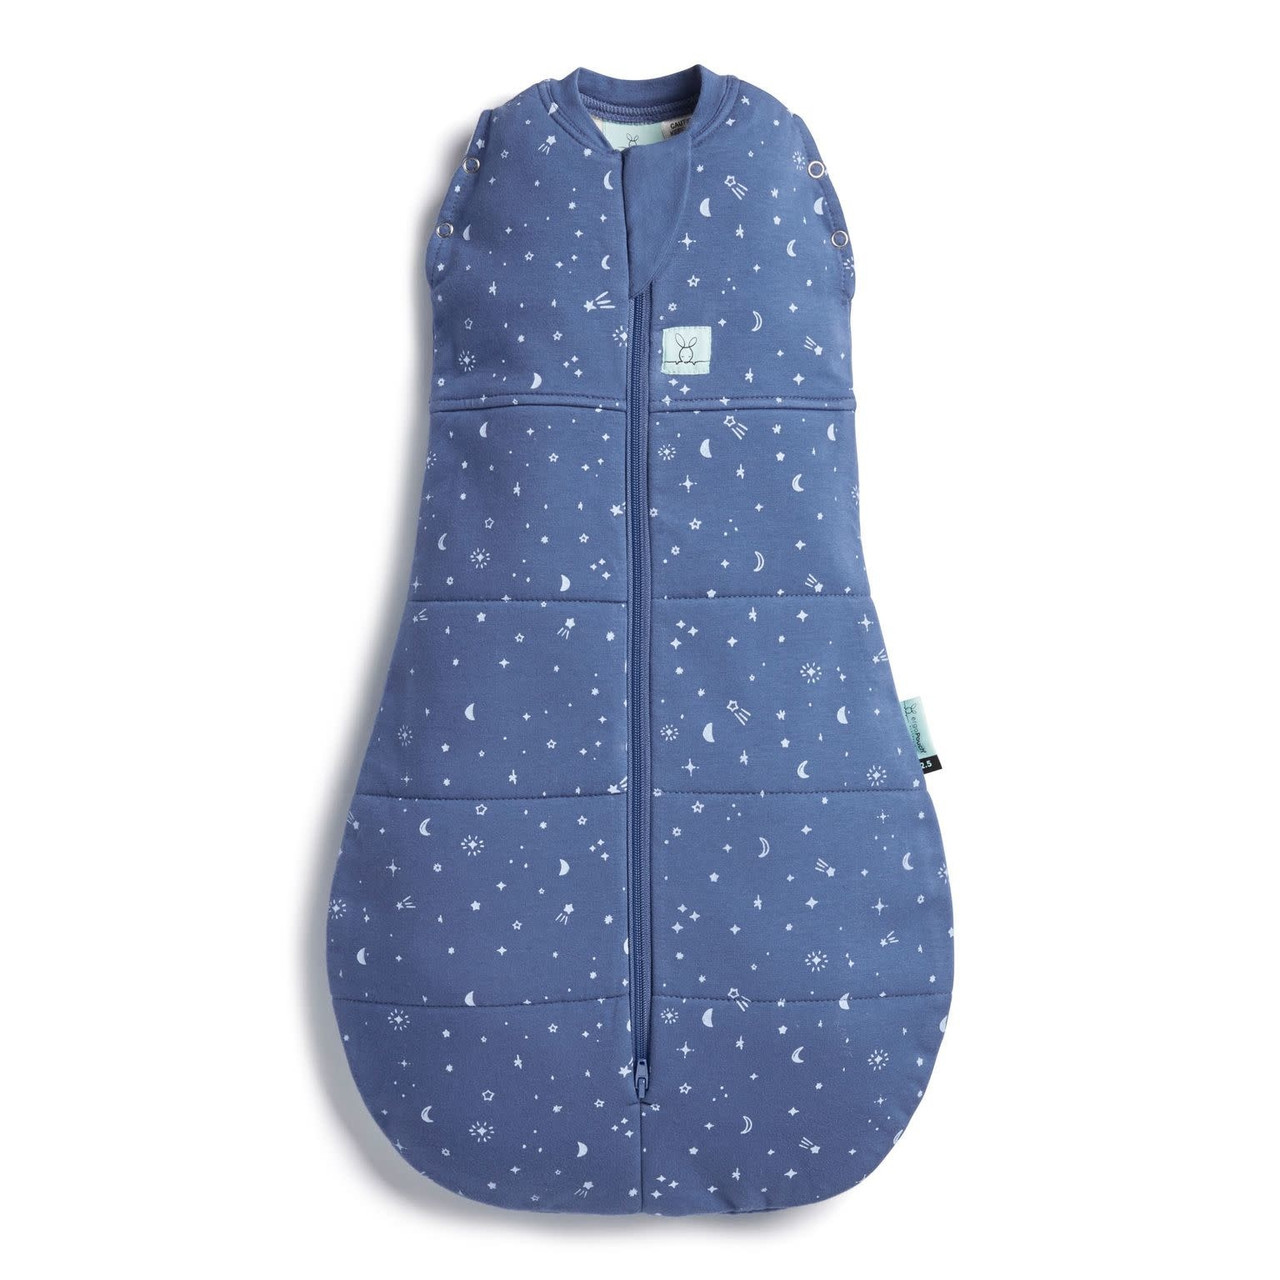 Ergopouch Cocoon Swaddle Bag 2.5 tog at Baby Barn Discounts Ergopouch cocoon winter swaddle perfect for newborns during winter months 17°C and 23°C.